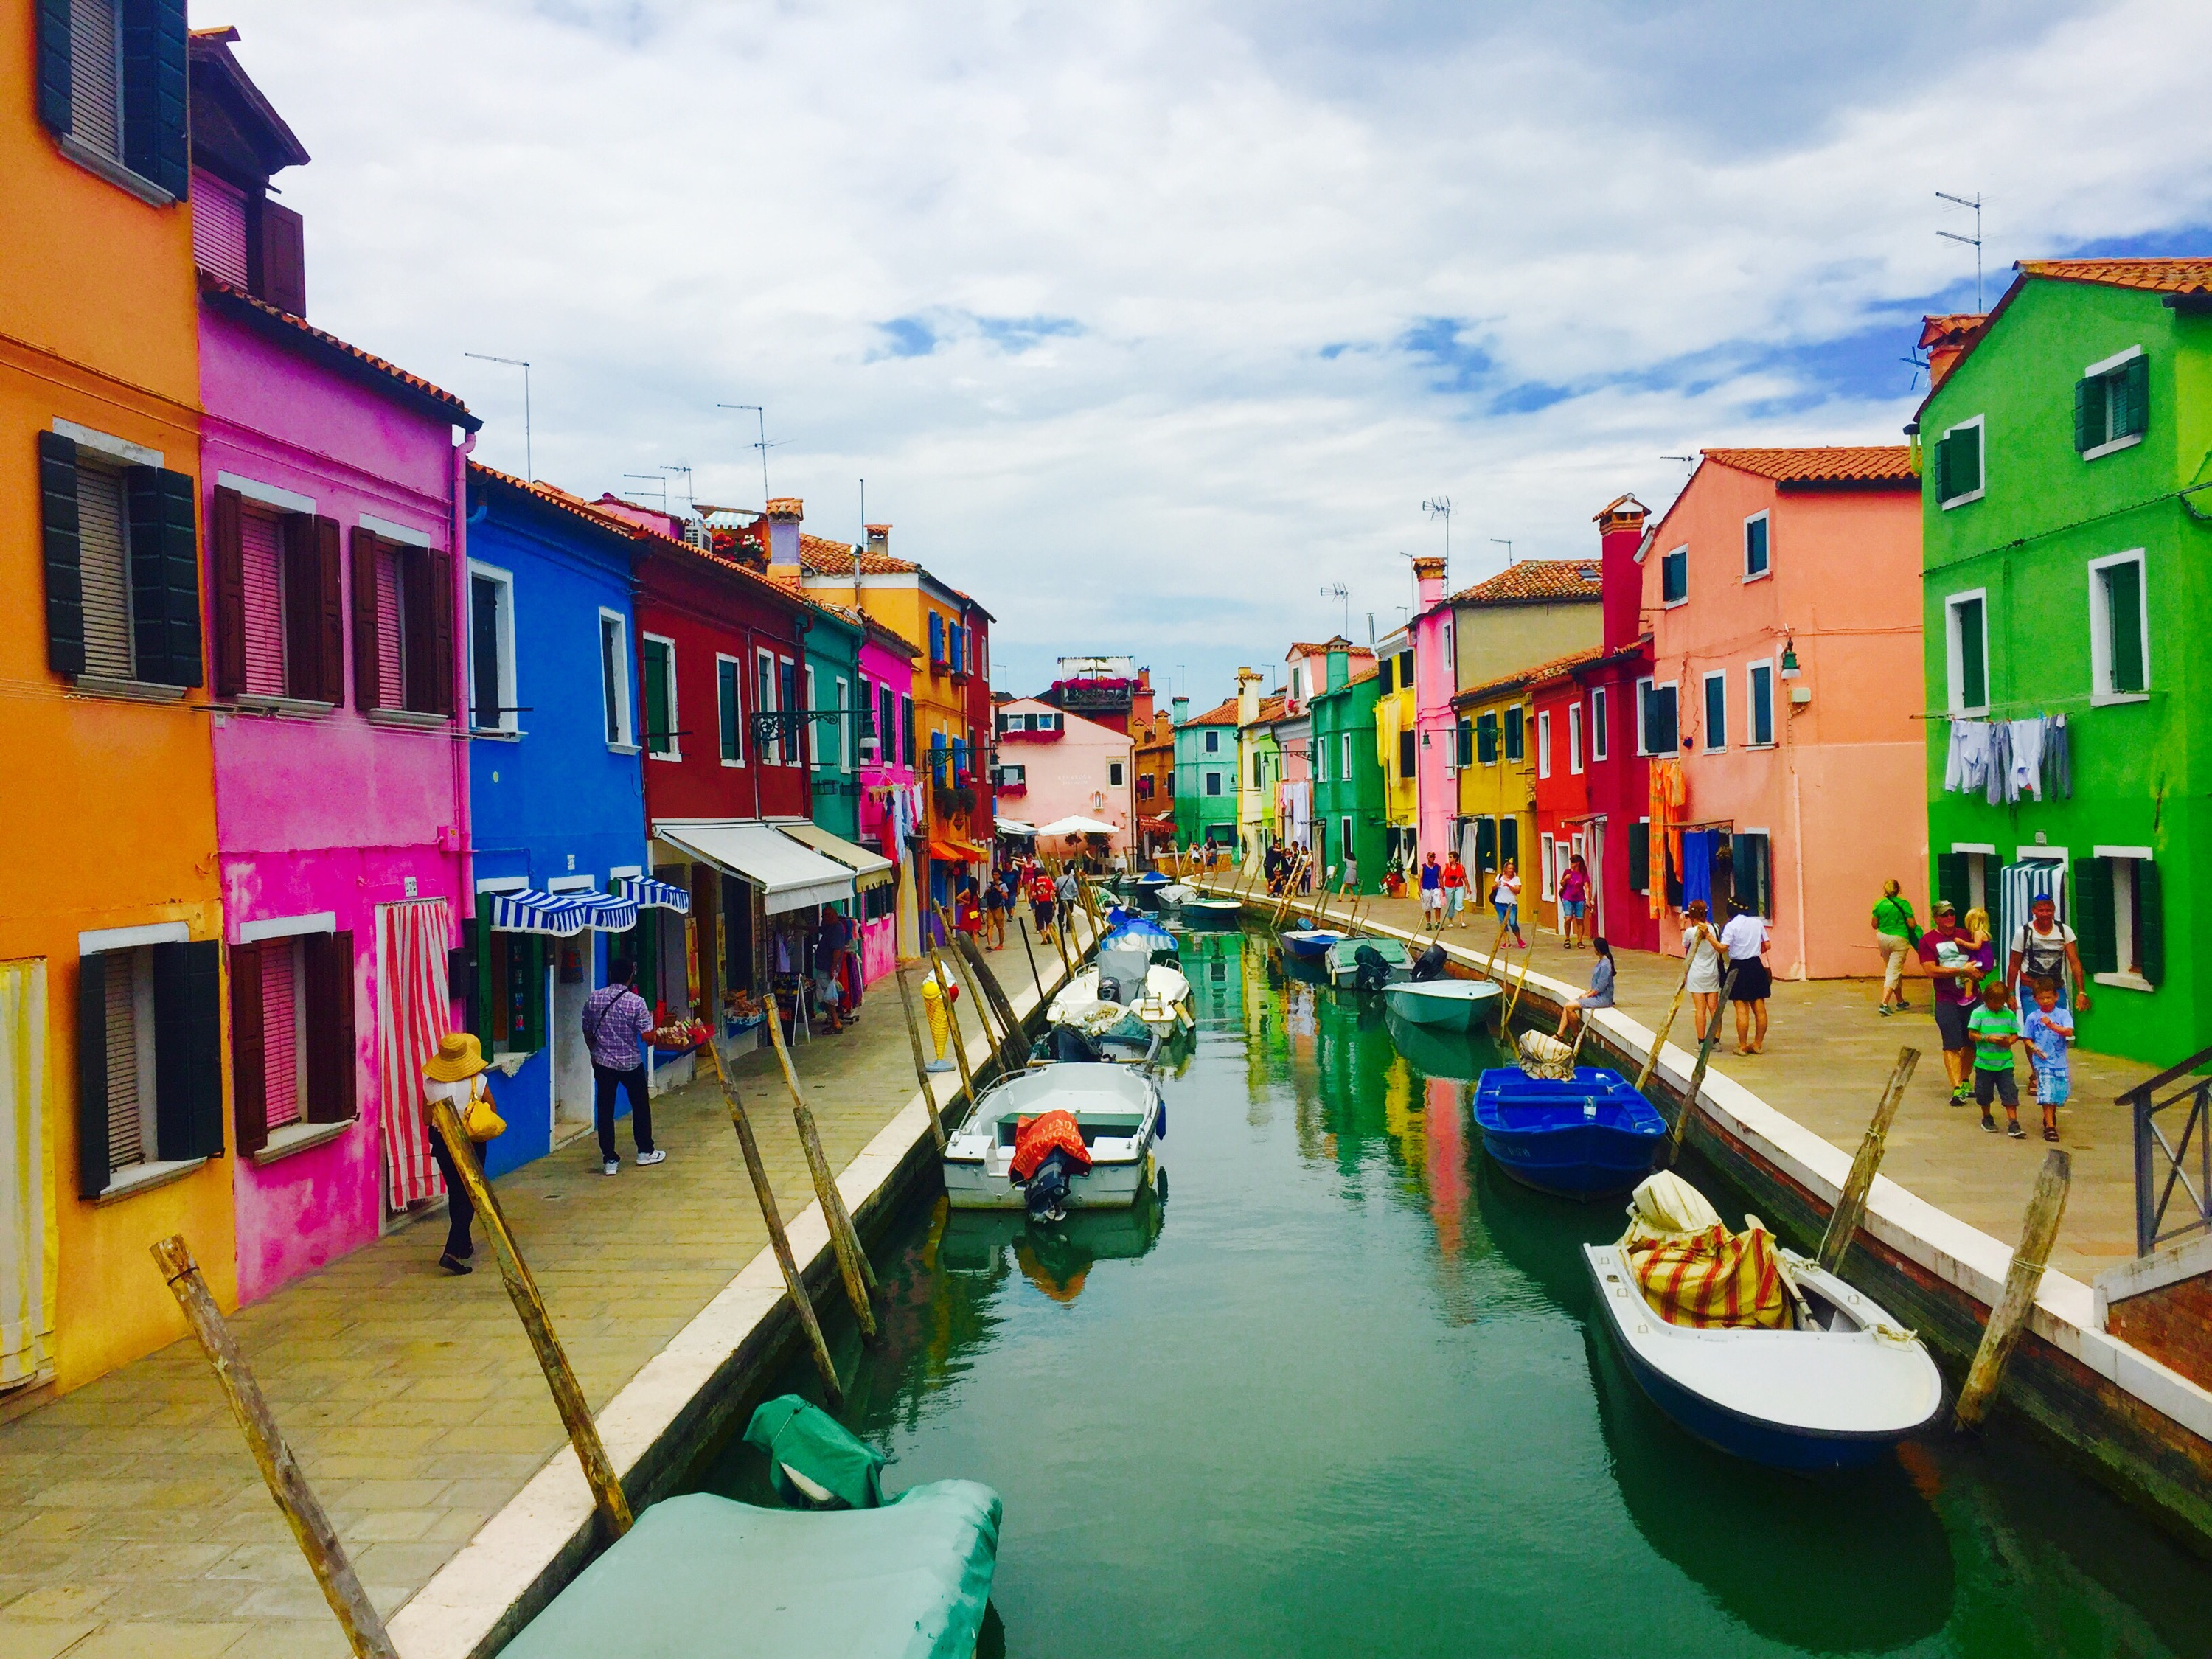 Colorful burano italy burano tourism - One Of The Most Colorful Cities In The World An Island In Italy Called Burano